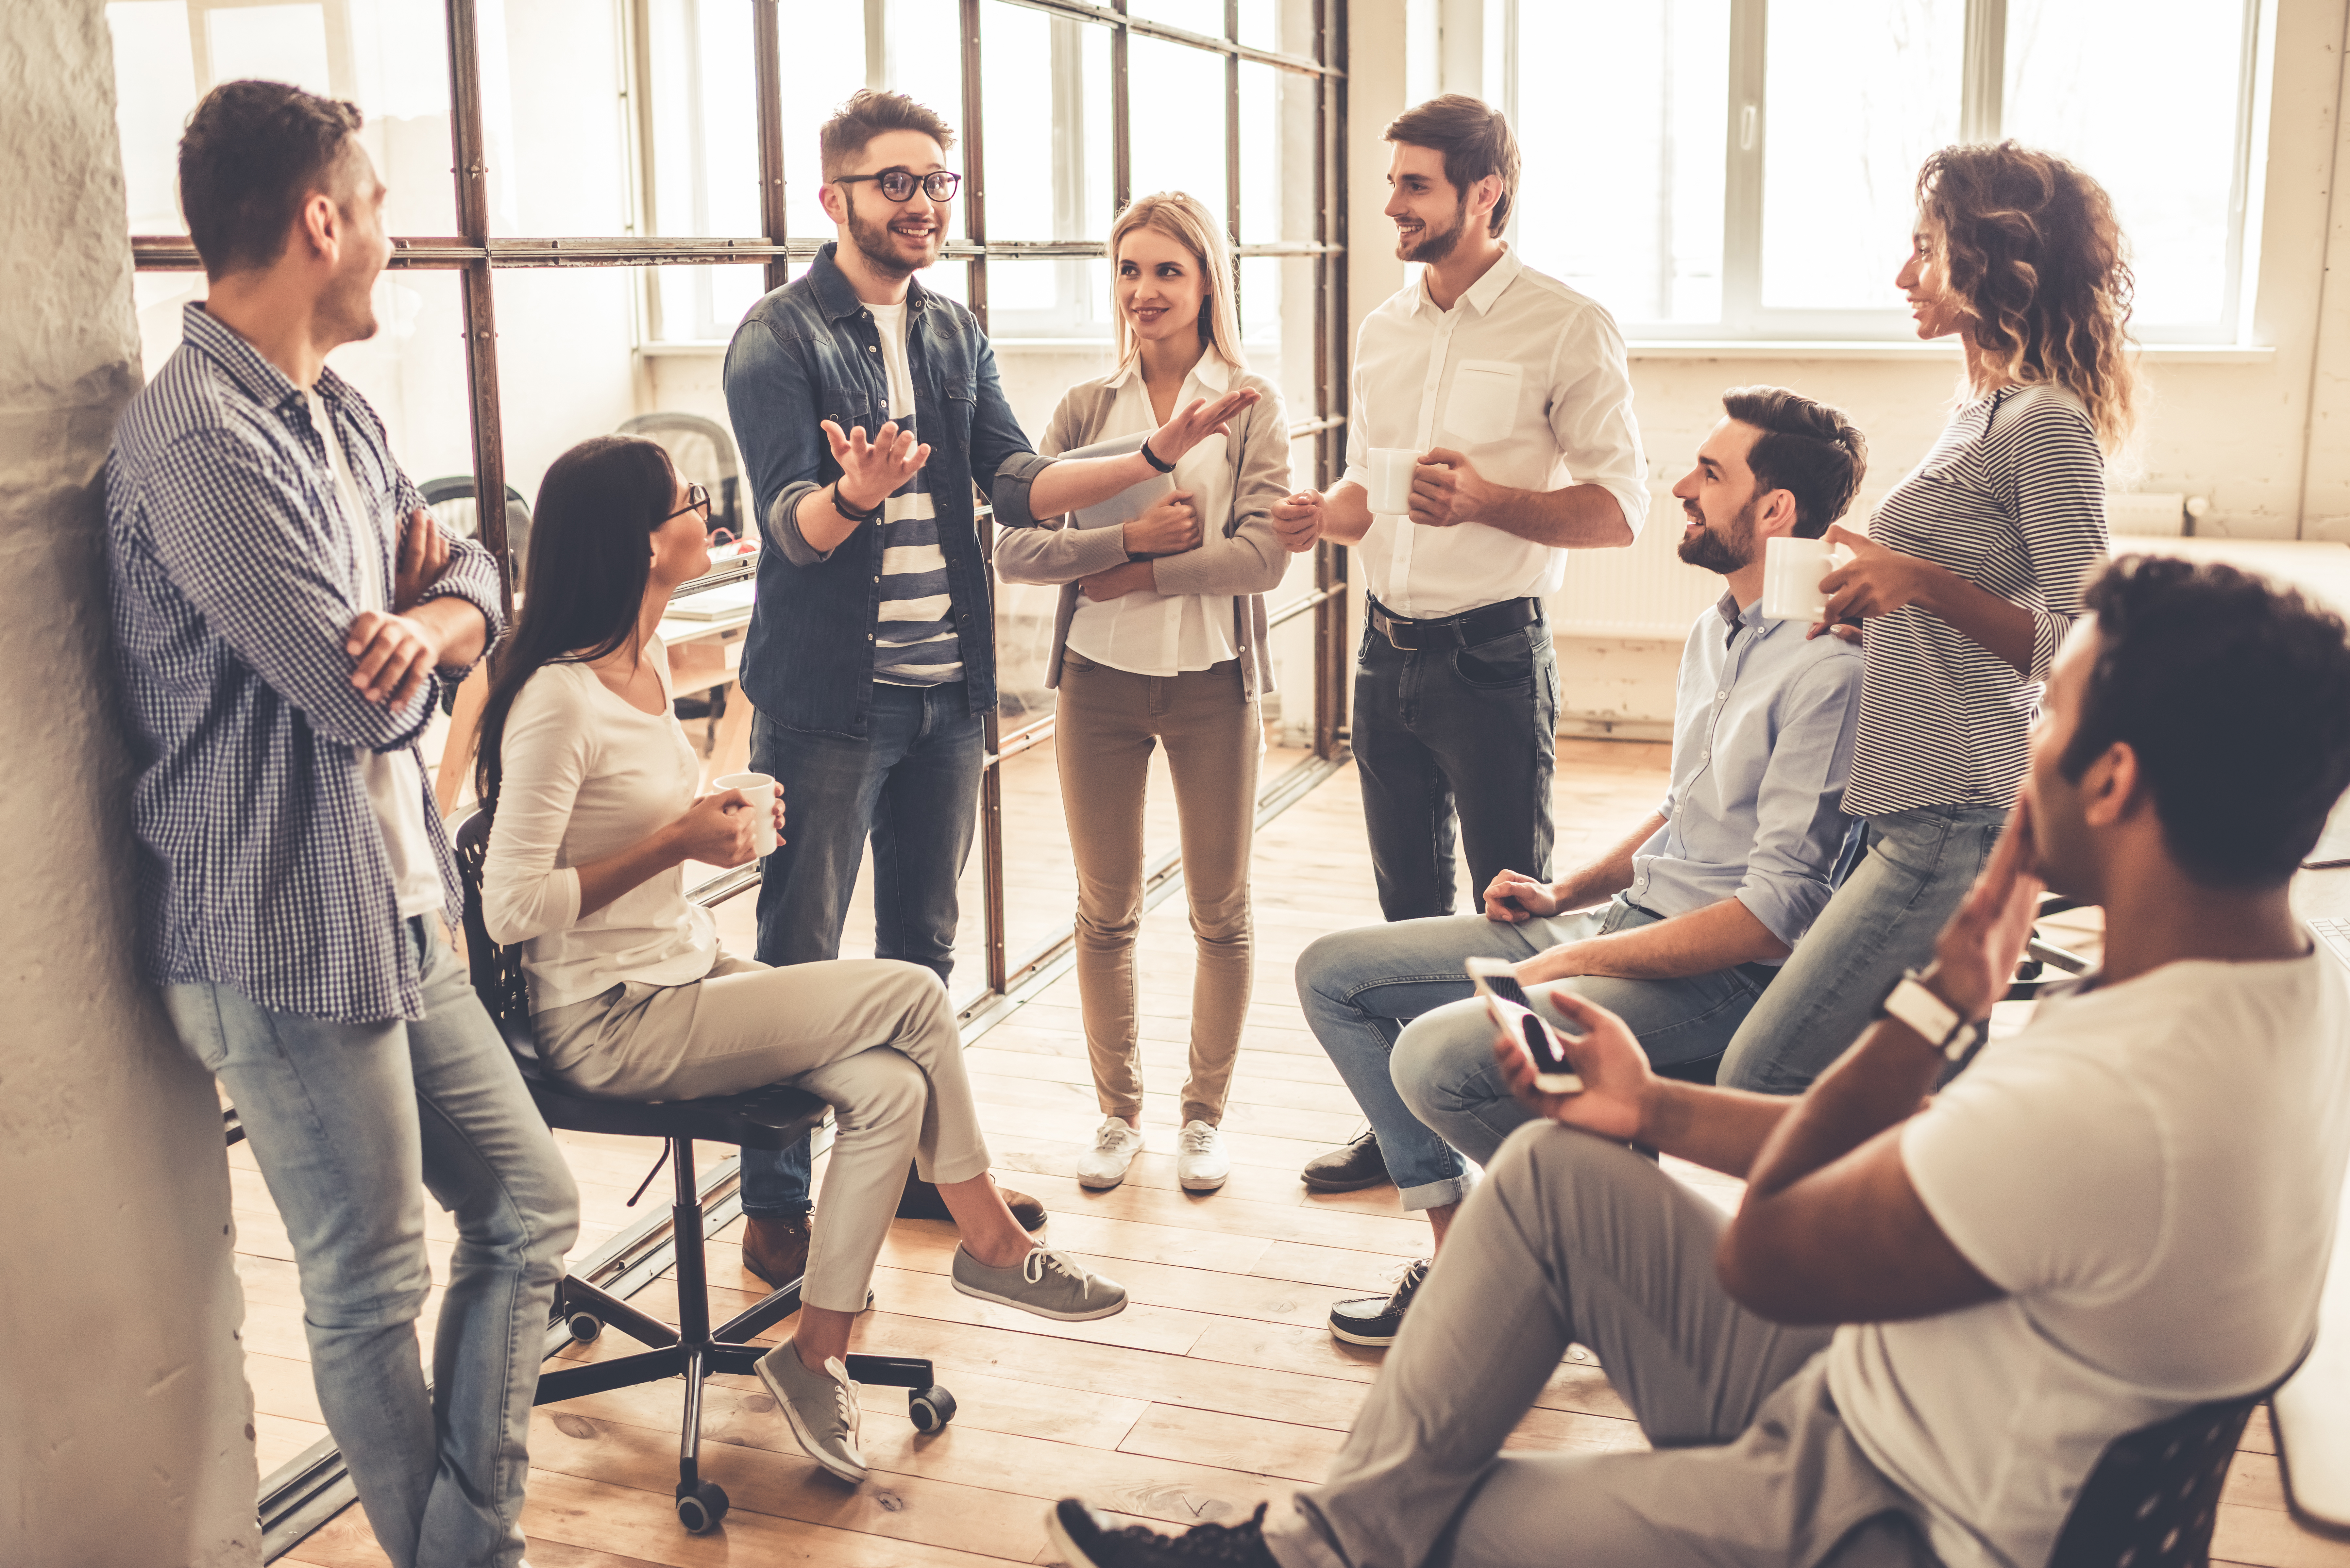 stock-photo-successful-young-business-people-are-talking-and-smiling-during-the-coffee-break-in-office-604204226